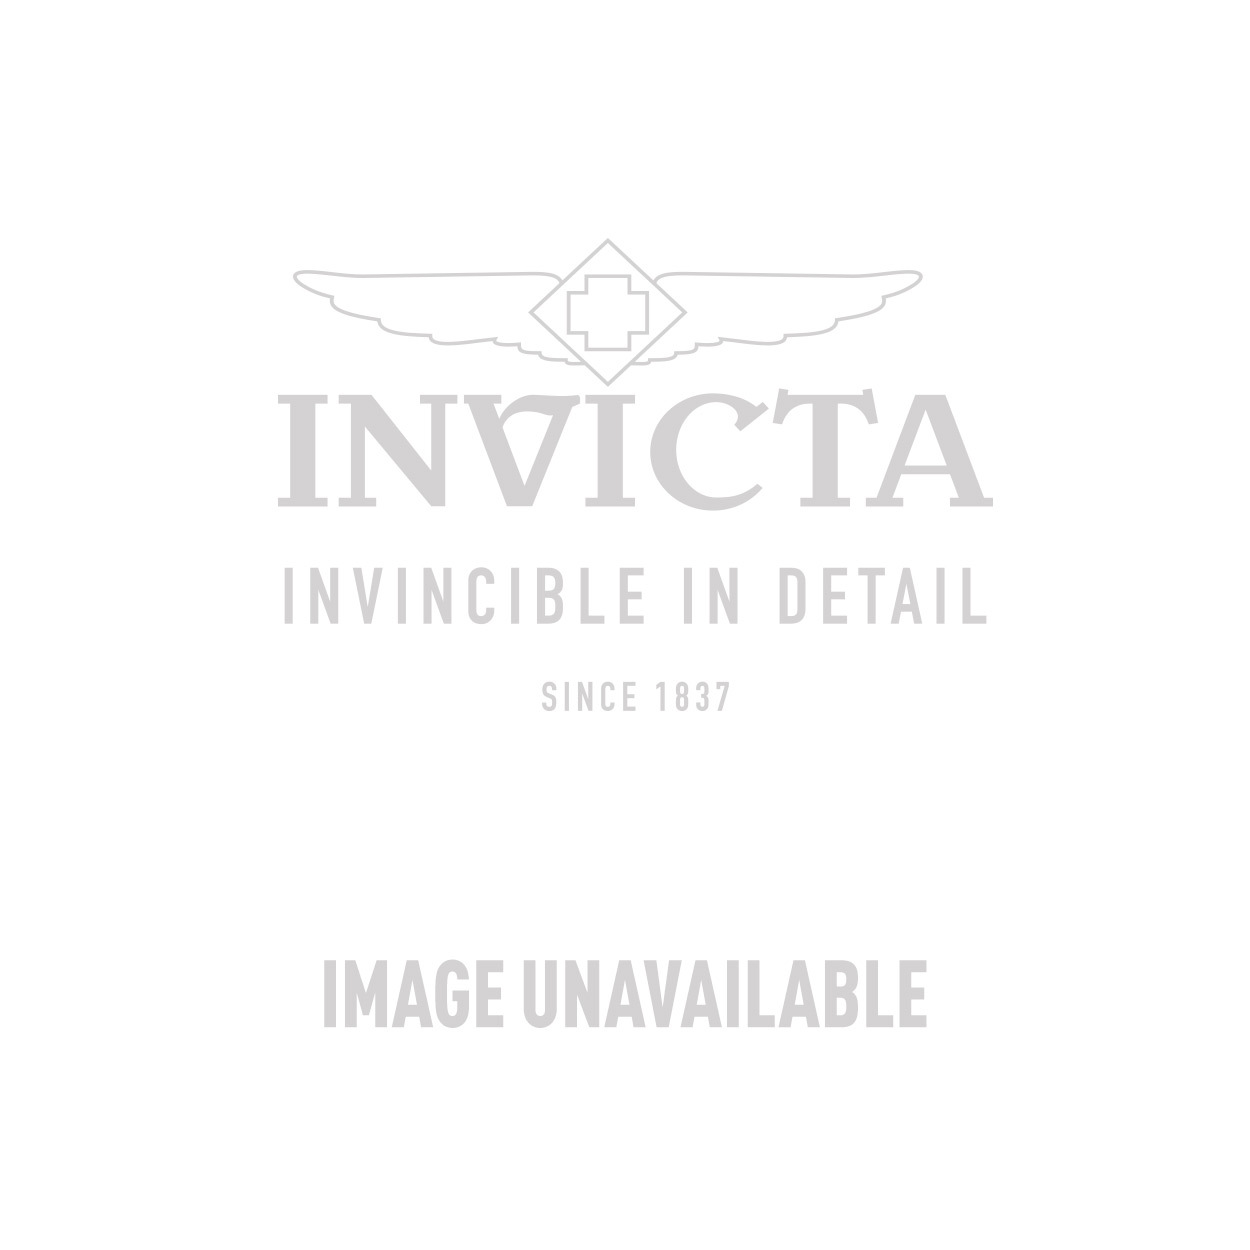 Invicta Bolt Swiss Made Quartz Watch - Rose Gold, Black case with Rose Gold, Black tone Stainless Steel band - Model 80546